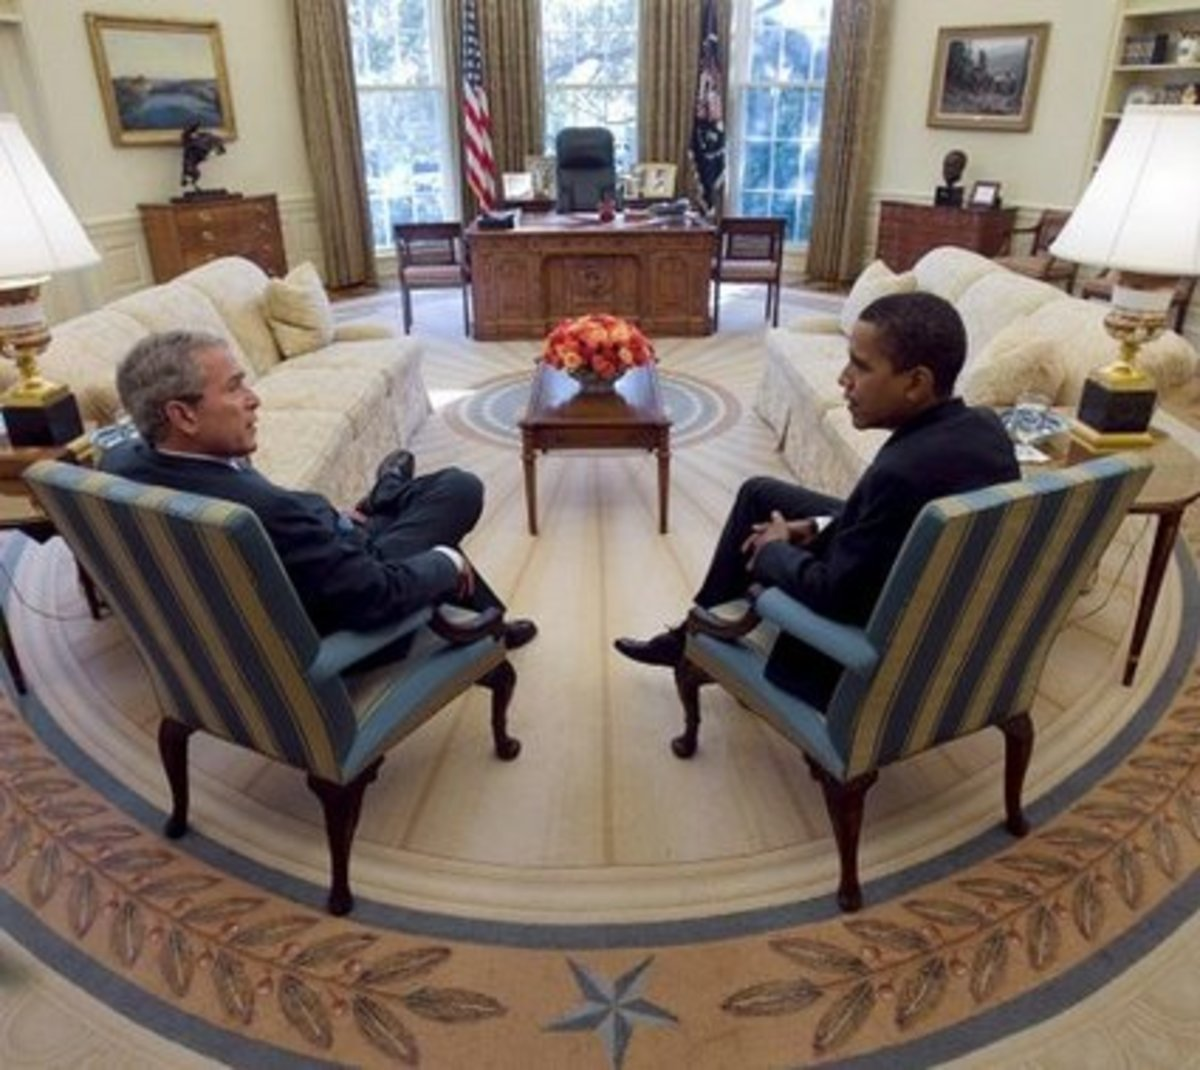 President Bush meets with President-elect Obama in the Oval Office. These blue and gold striped chairs were the center of many photographs that Bush had taken with Oval Office guests.